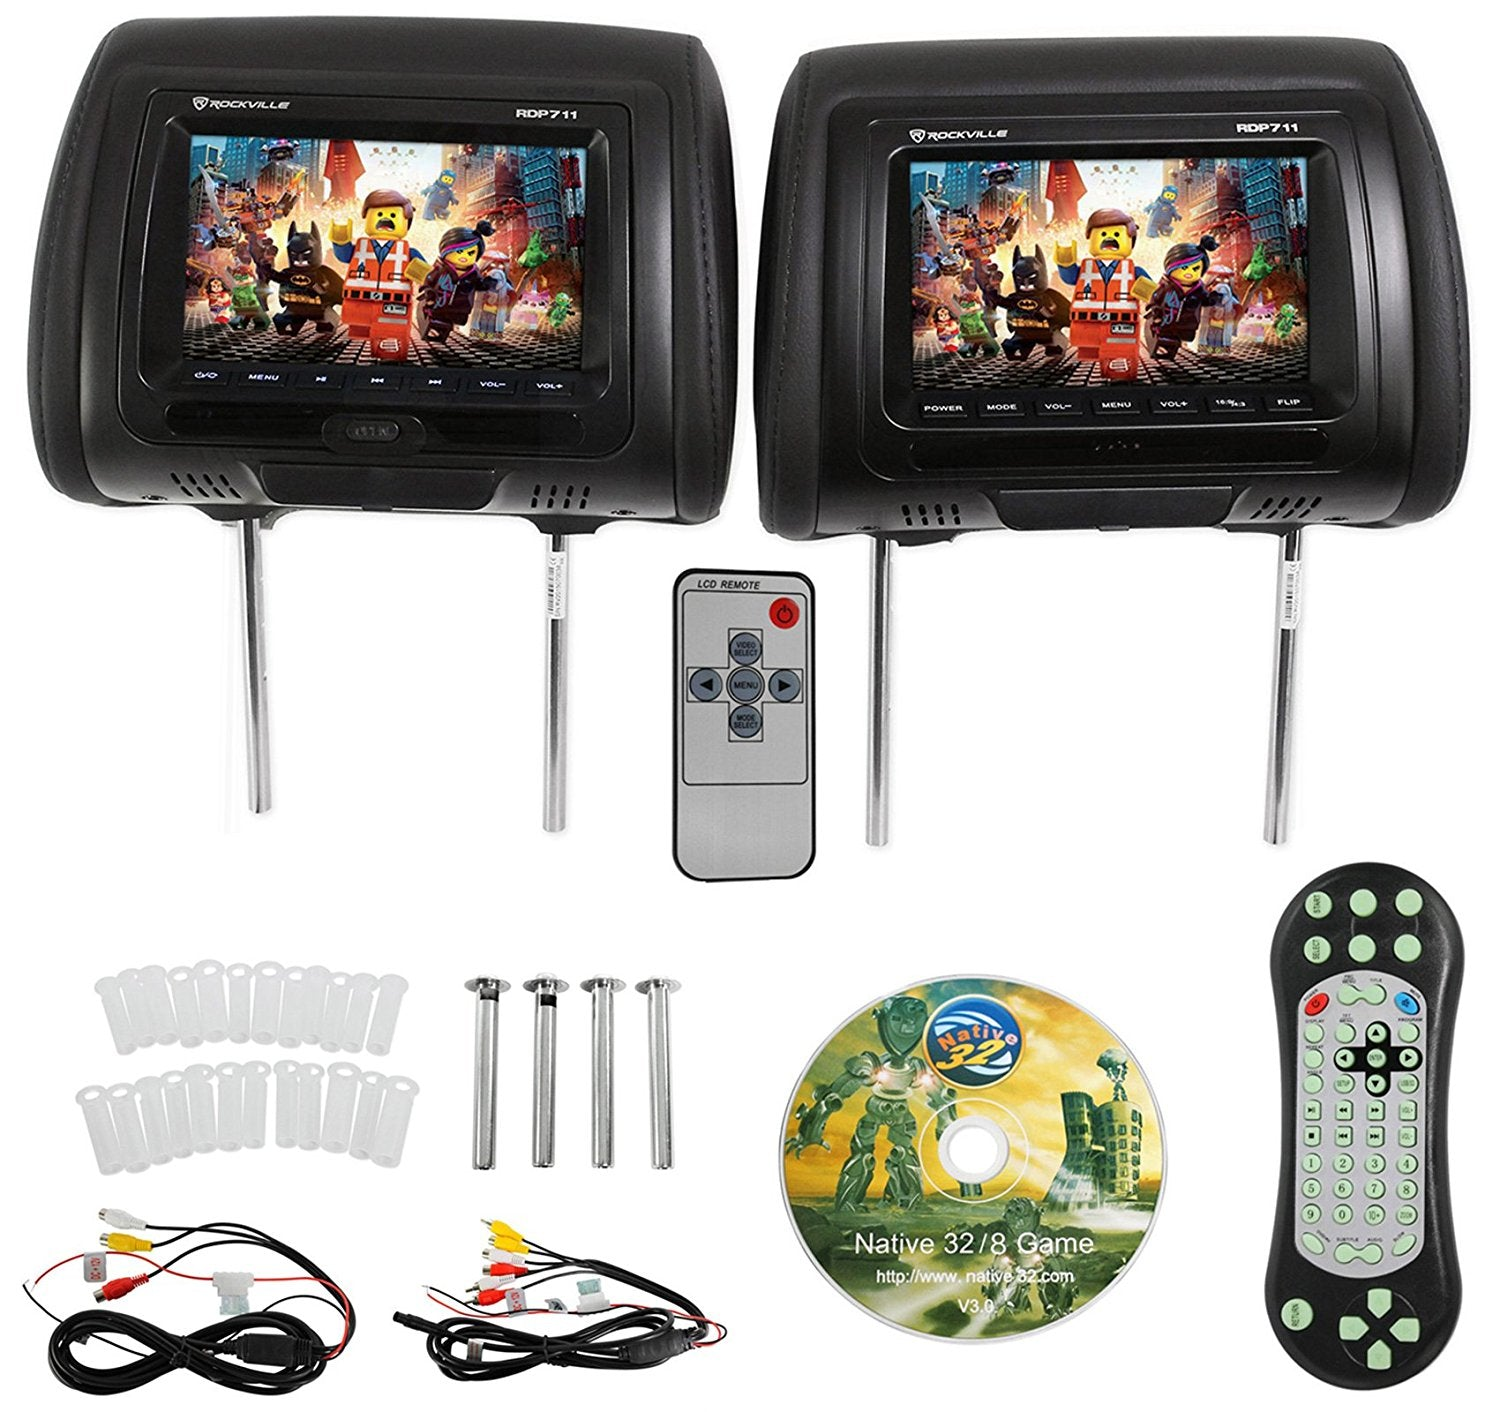 #4 Best Car Headrest DVD Player - Rockville RDP711